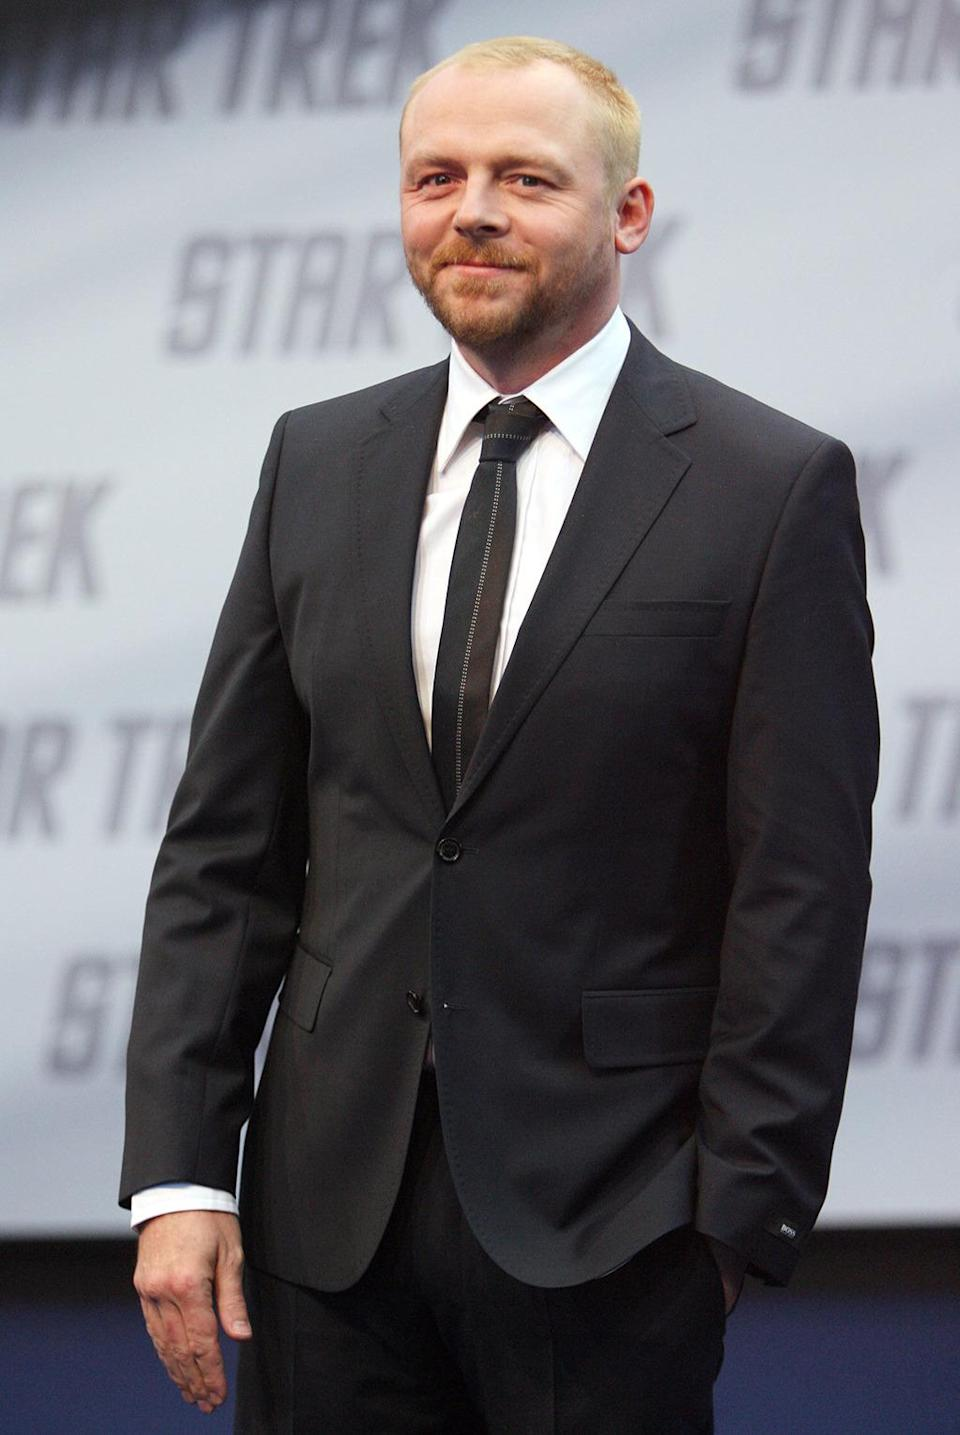 "<p>Simon Pegg (Scotty) at the German premiere. Pegg is British; he received <a href=""http://www.bbcamerica.com/anglophenia/2009/04/simon-pegg-explains-his-scottish-accent-in-star-trek"" rel=""nofollow noopener"" target=""_blank"" data-ylk=""slk:voice training from his wife"" class=""link rapid-noclick-resp"">voice training from his wife</a>, who is from Glasgow, to perfect Scotty's accent. <i>(Photo: Franziska Krug/Getty Images)</i></p>"